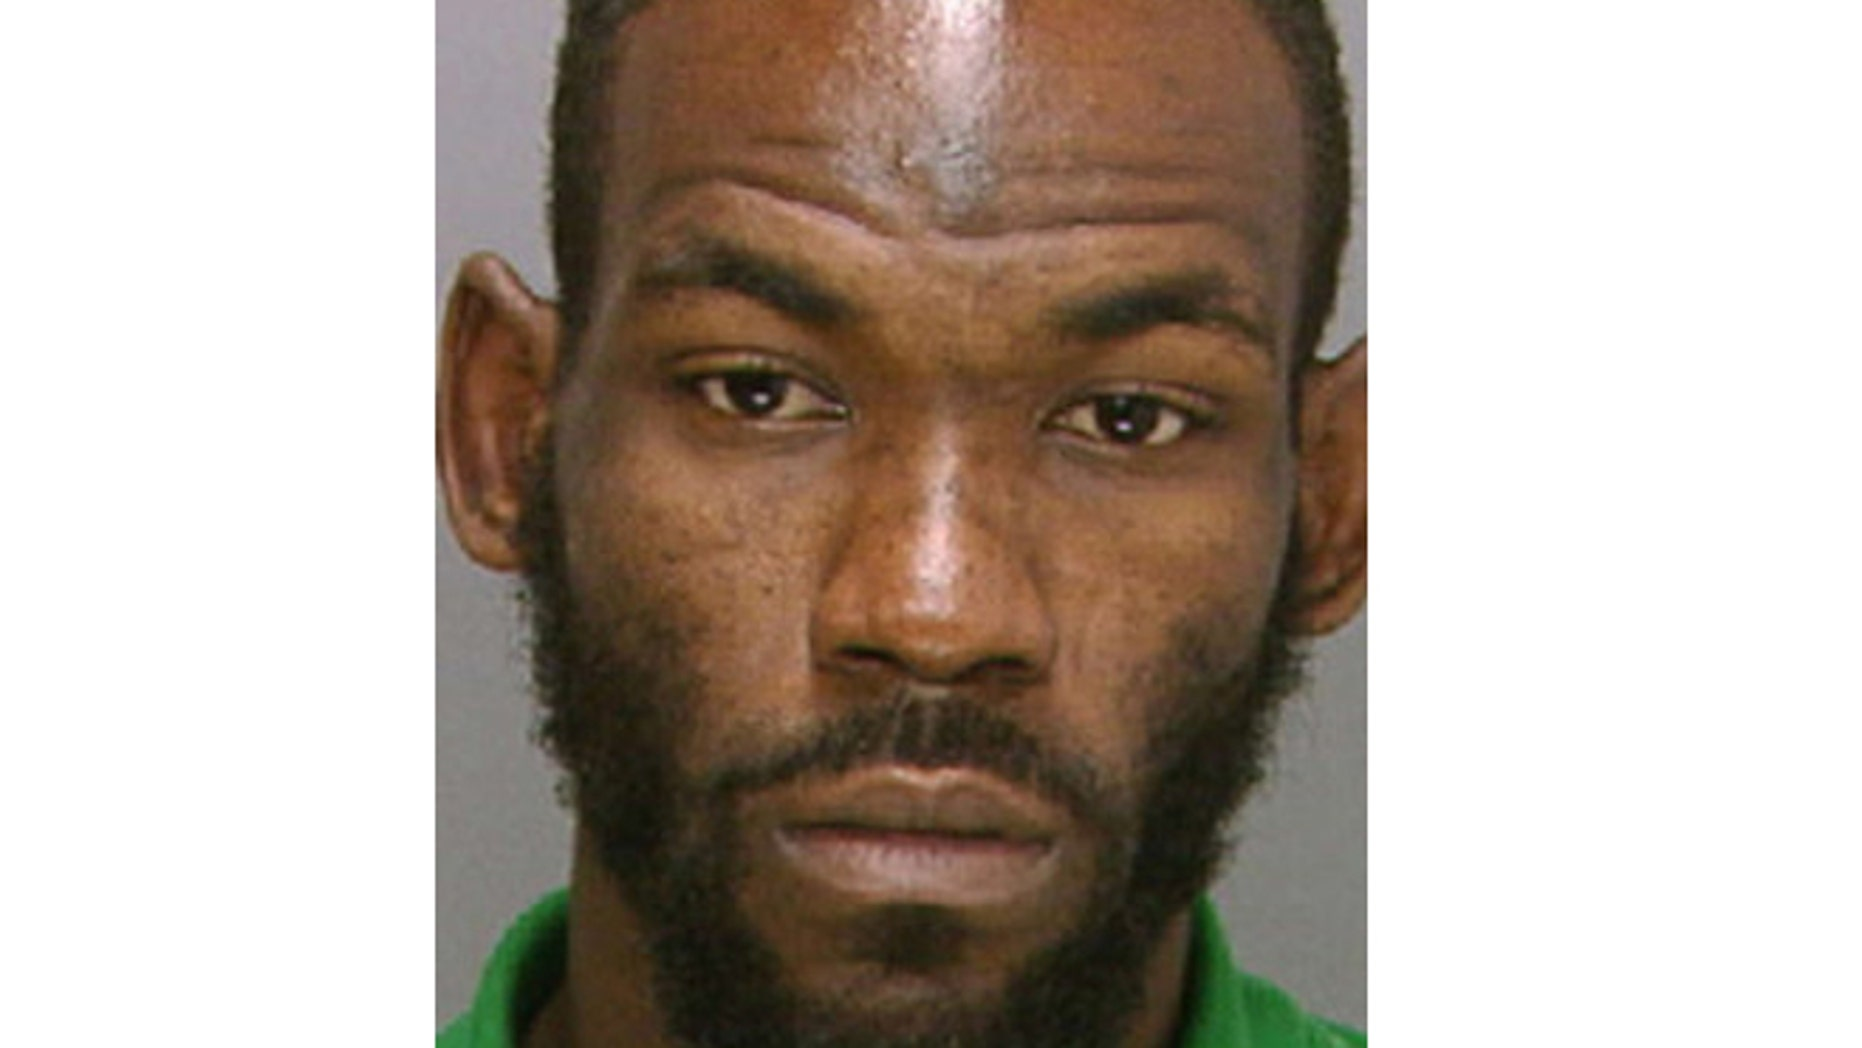 Jermal Ponds is behind bars after police say he carried a partly disassembled AK-47 assault rifle and other weapons onto a crowded subway car.